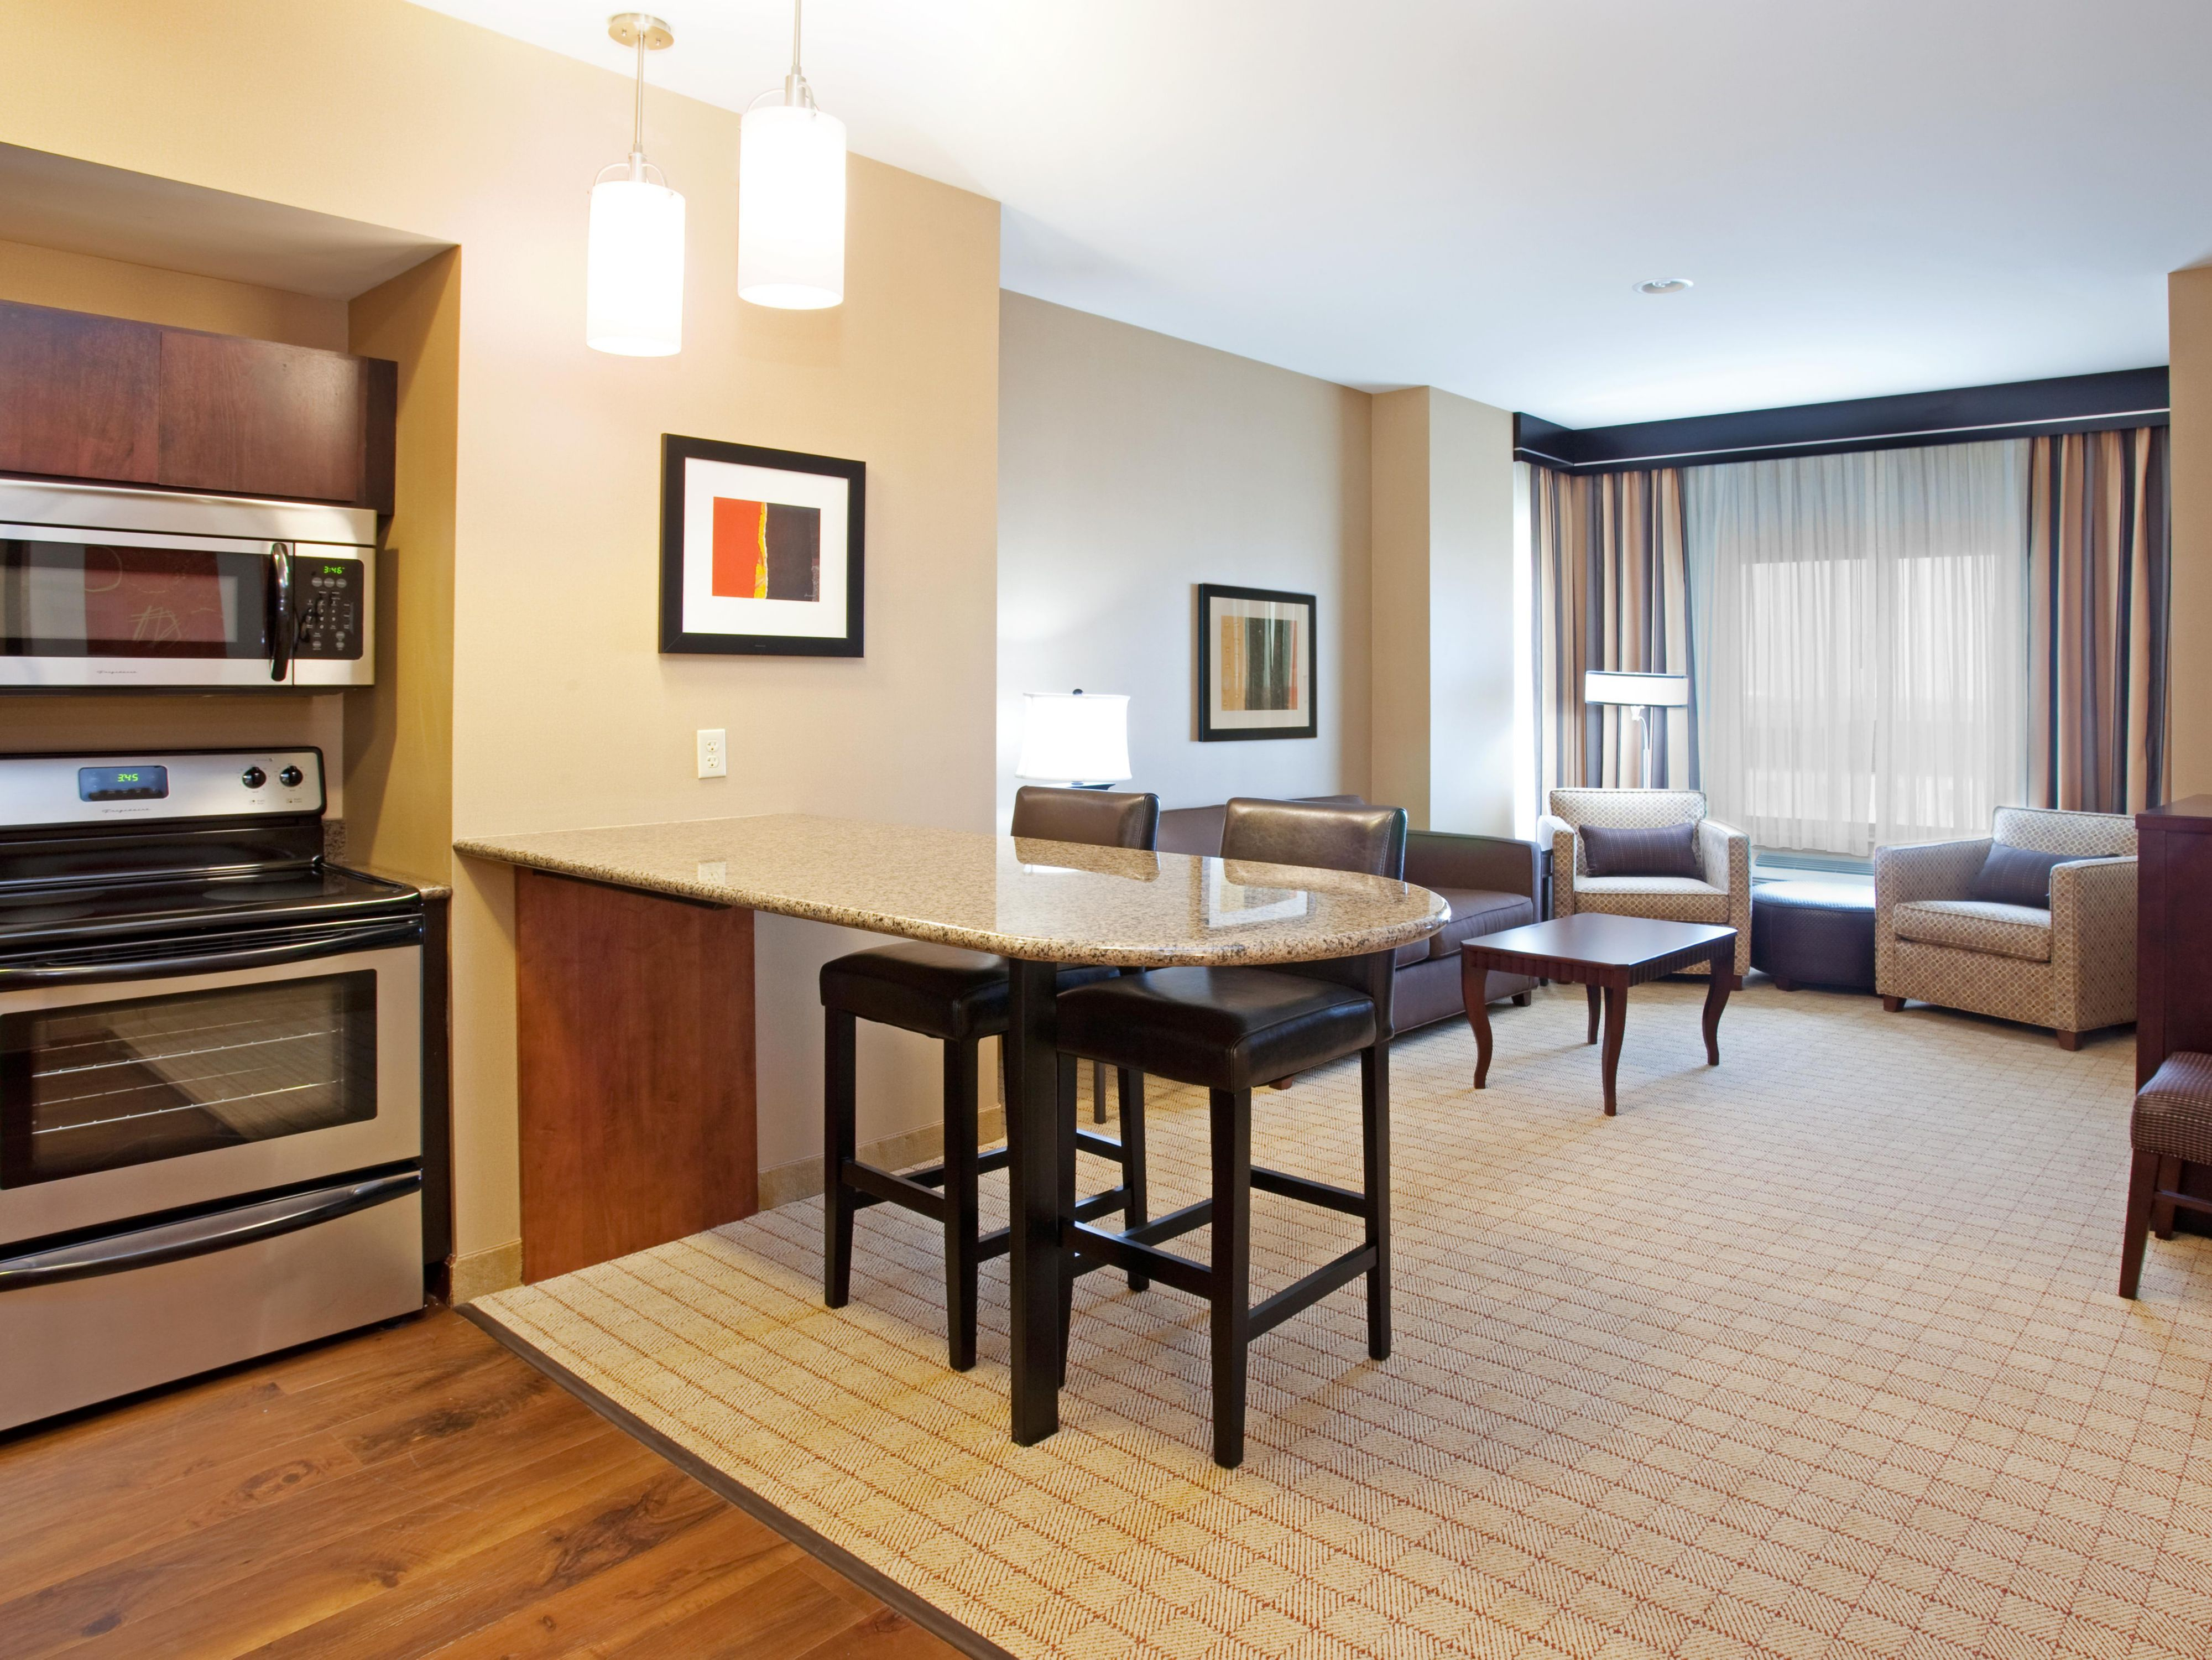 Junior Suite-Kitchen And Living Room View Near DIA